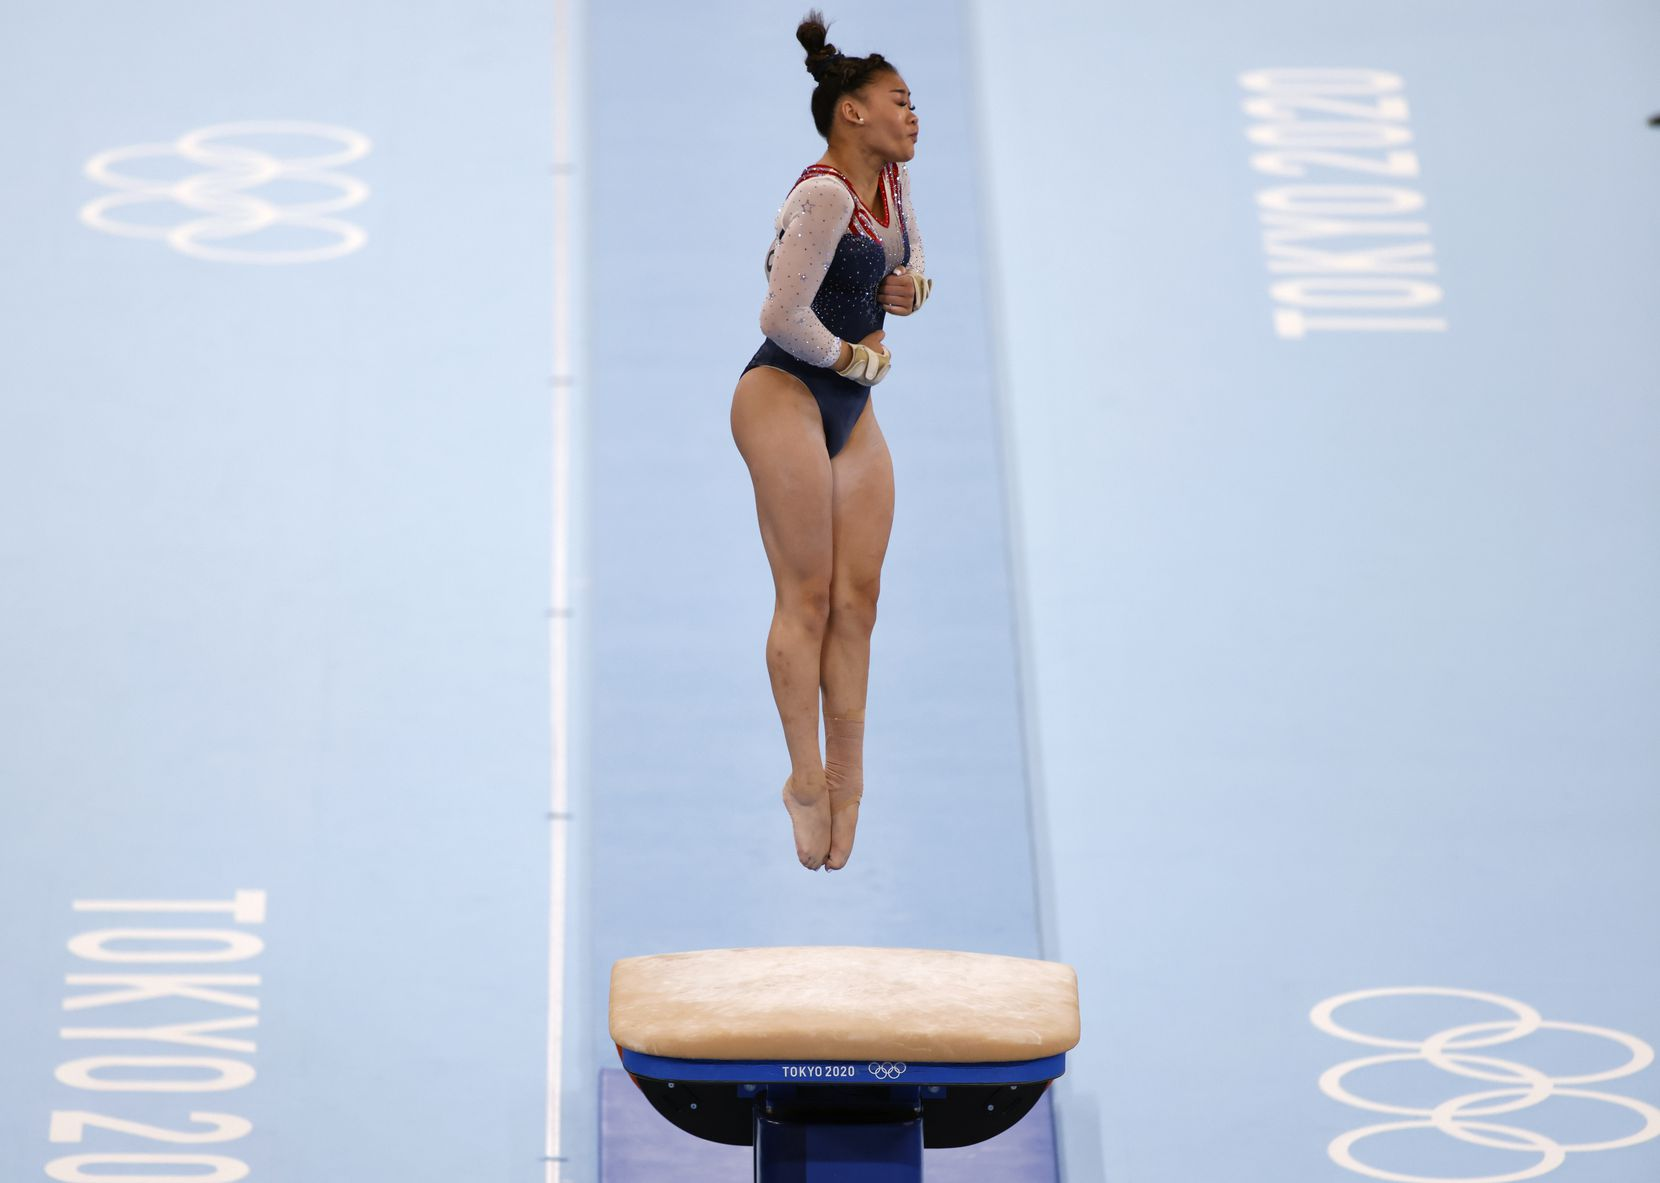 USA's Sunisa Lee competes on the vault during the women's all-around final at the postponed 2020 Tokyo Olympics at Ariake Gymnastics Centre, on Thursday, July 29, 2021, in Tokyo, Japan. Lee won the all-around earning a gold medal. (Vernon Bryant/The Dallas Morning News)